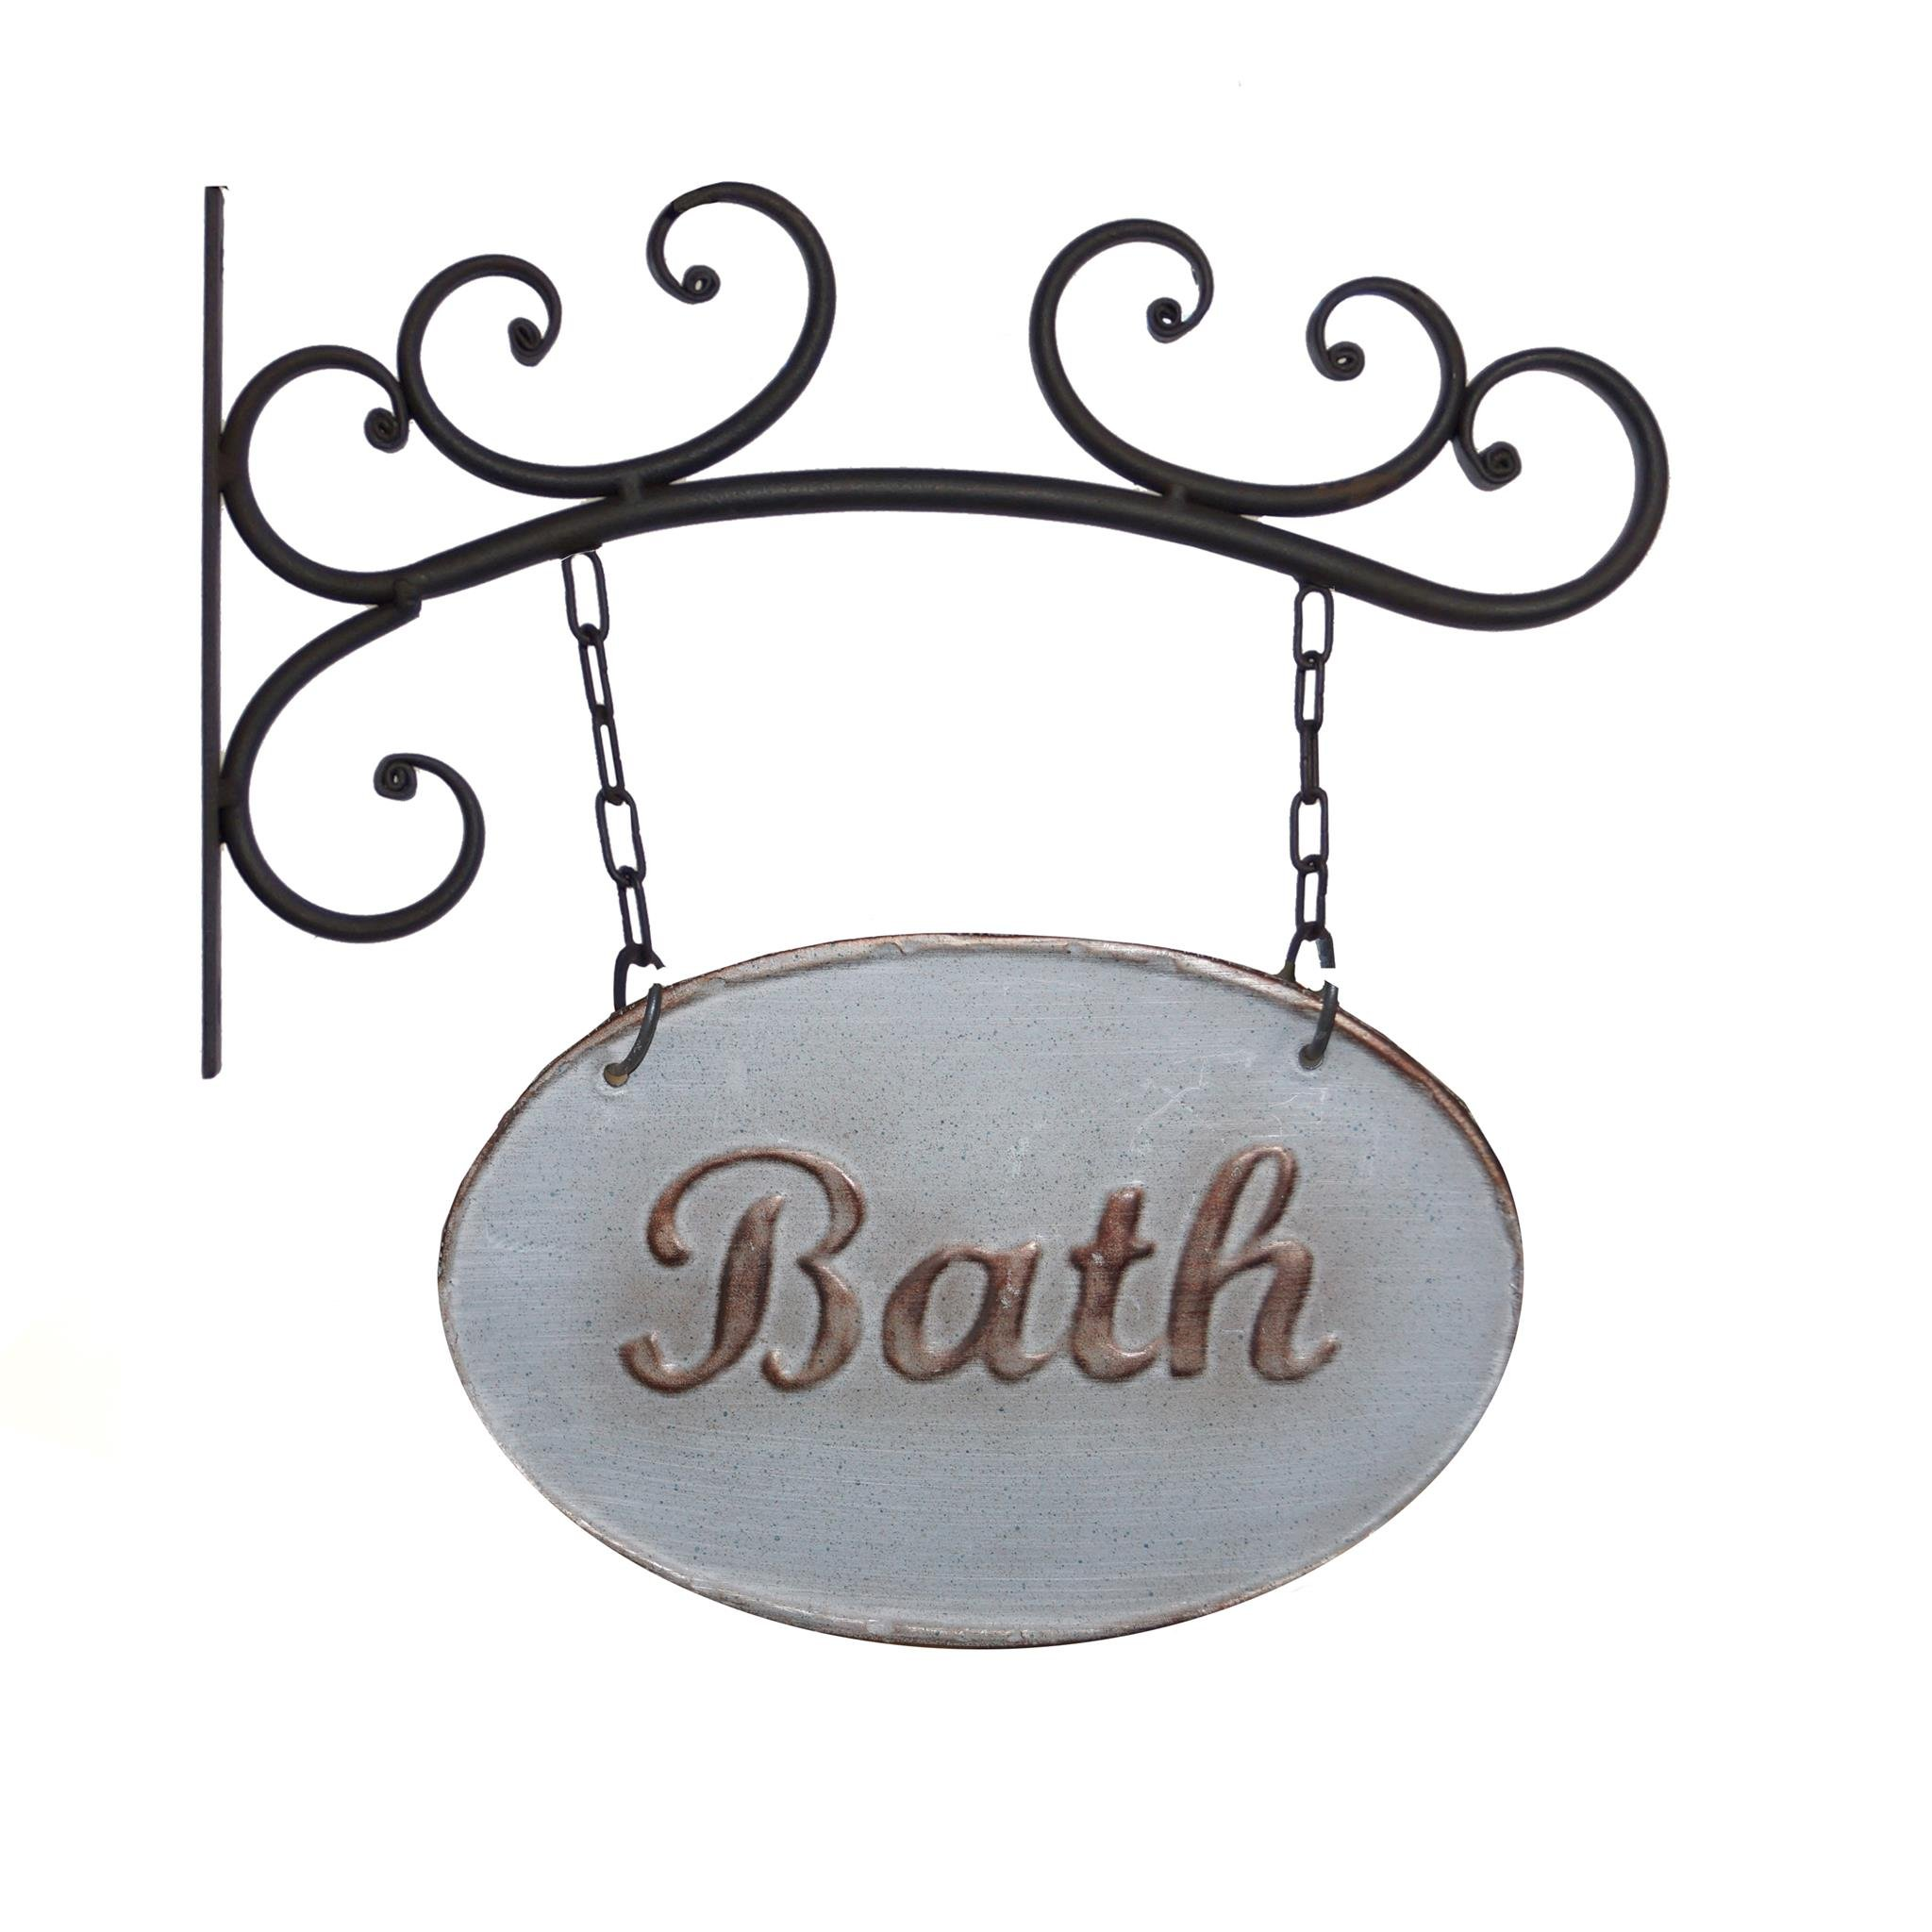 Vintage Rustic Wall Mounted Bracket with Double Sided Hanging Sign, Bath